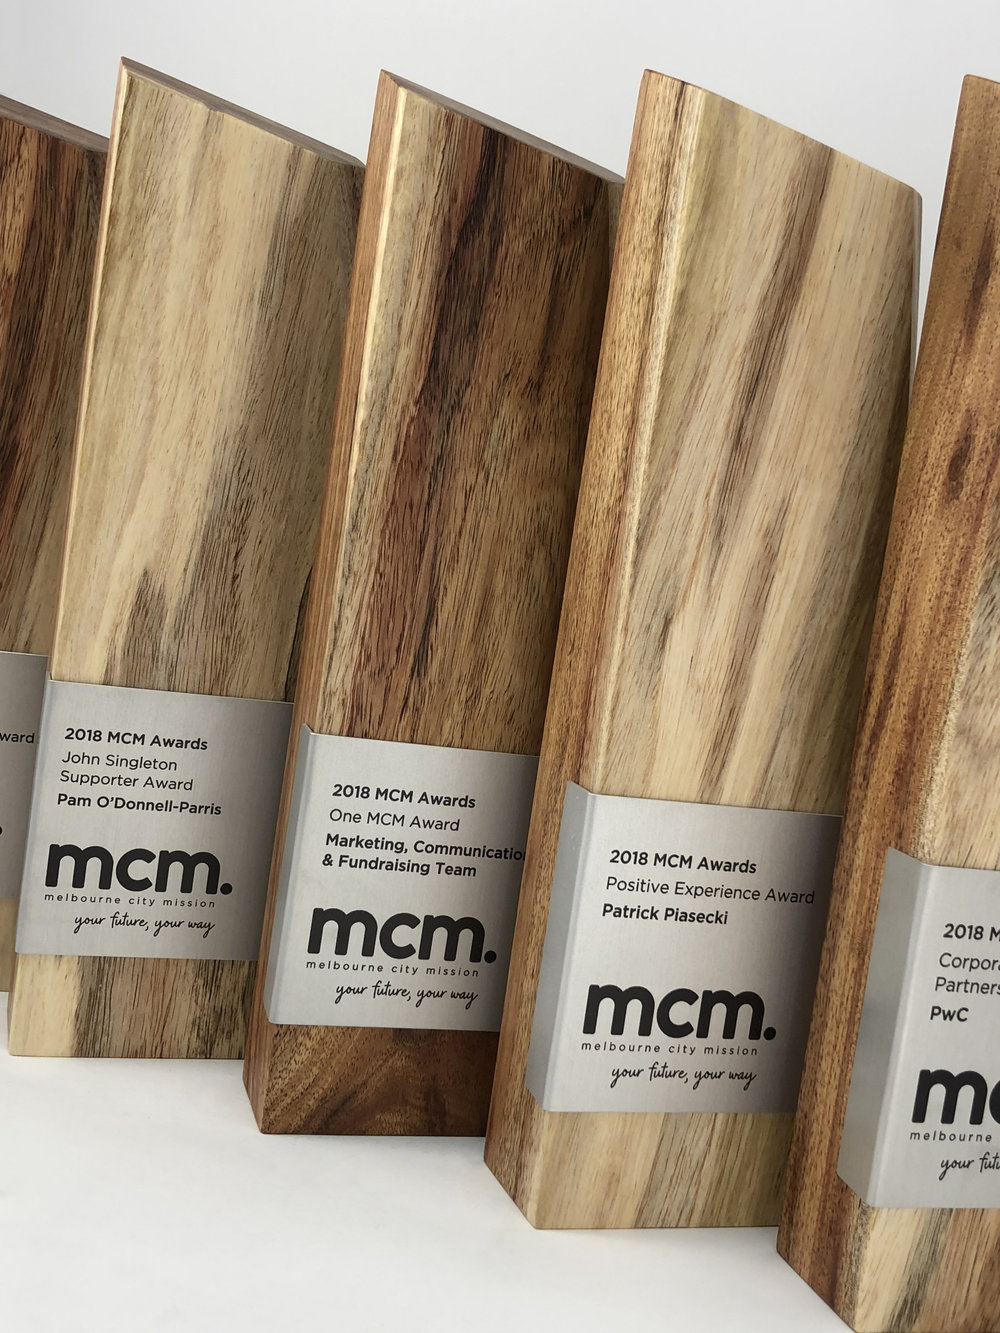 mcm-awards-reclaimed-eco-timber-chamfer-metal-trophy-06.jpg